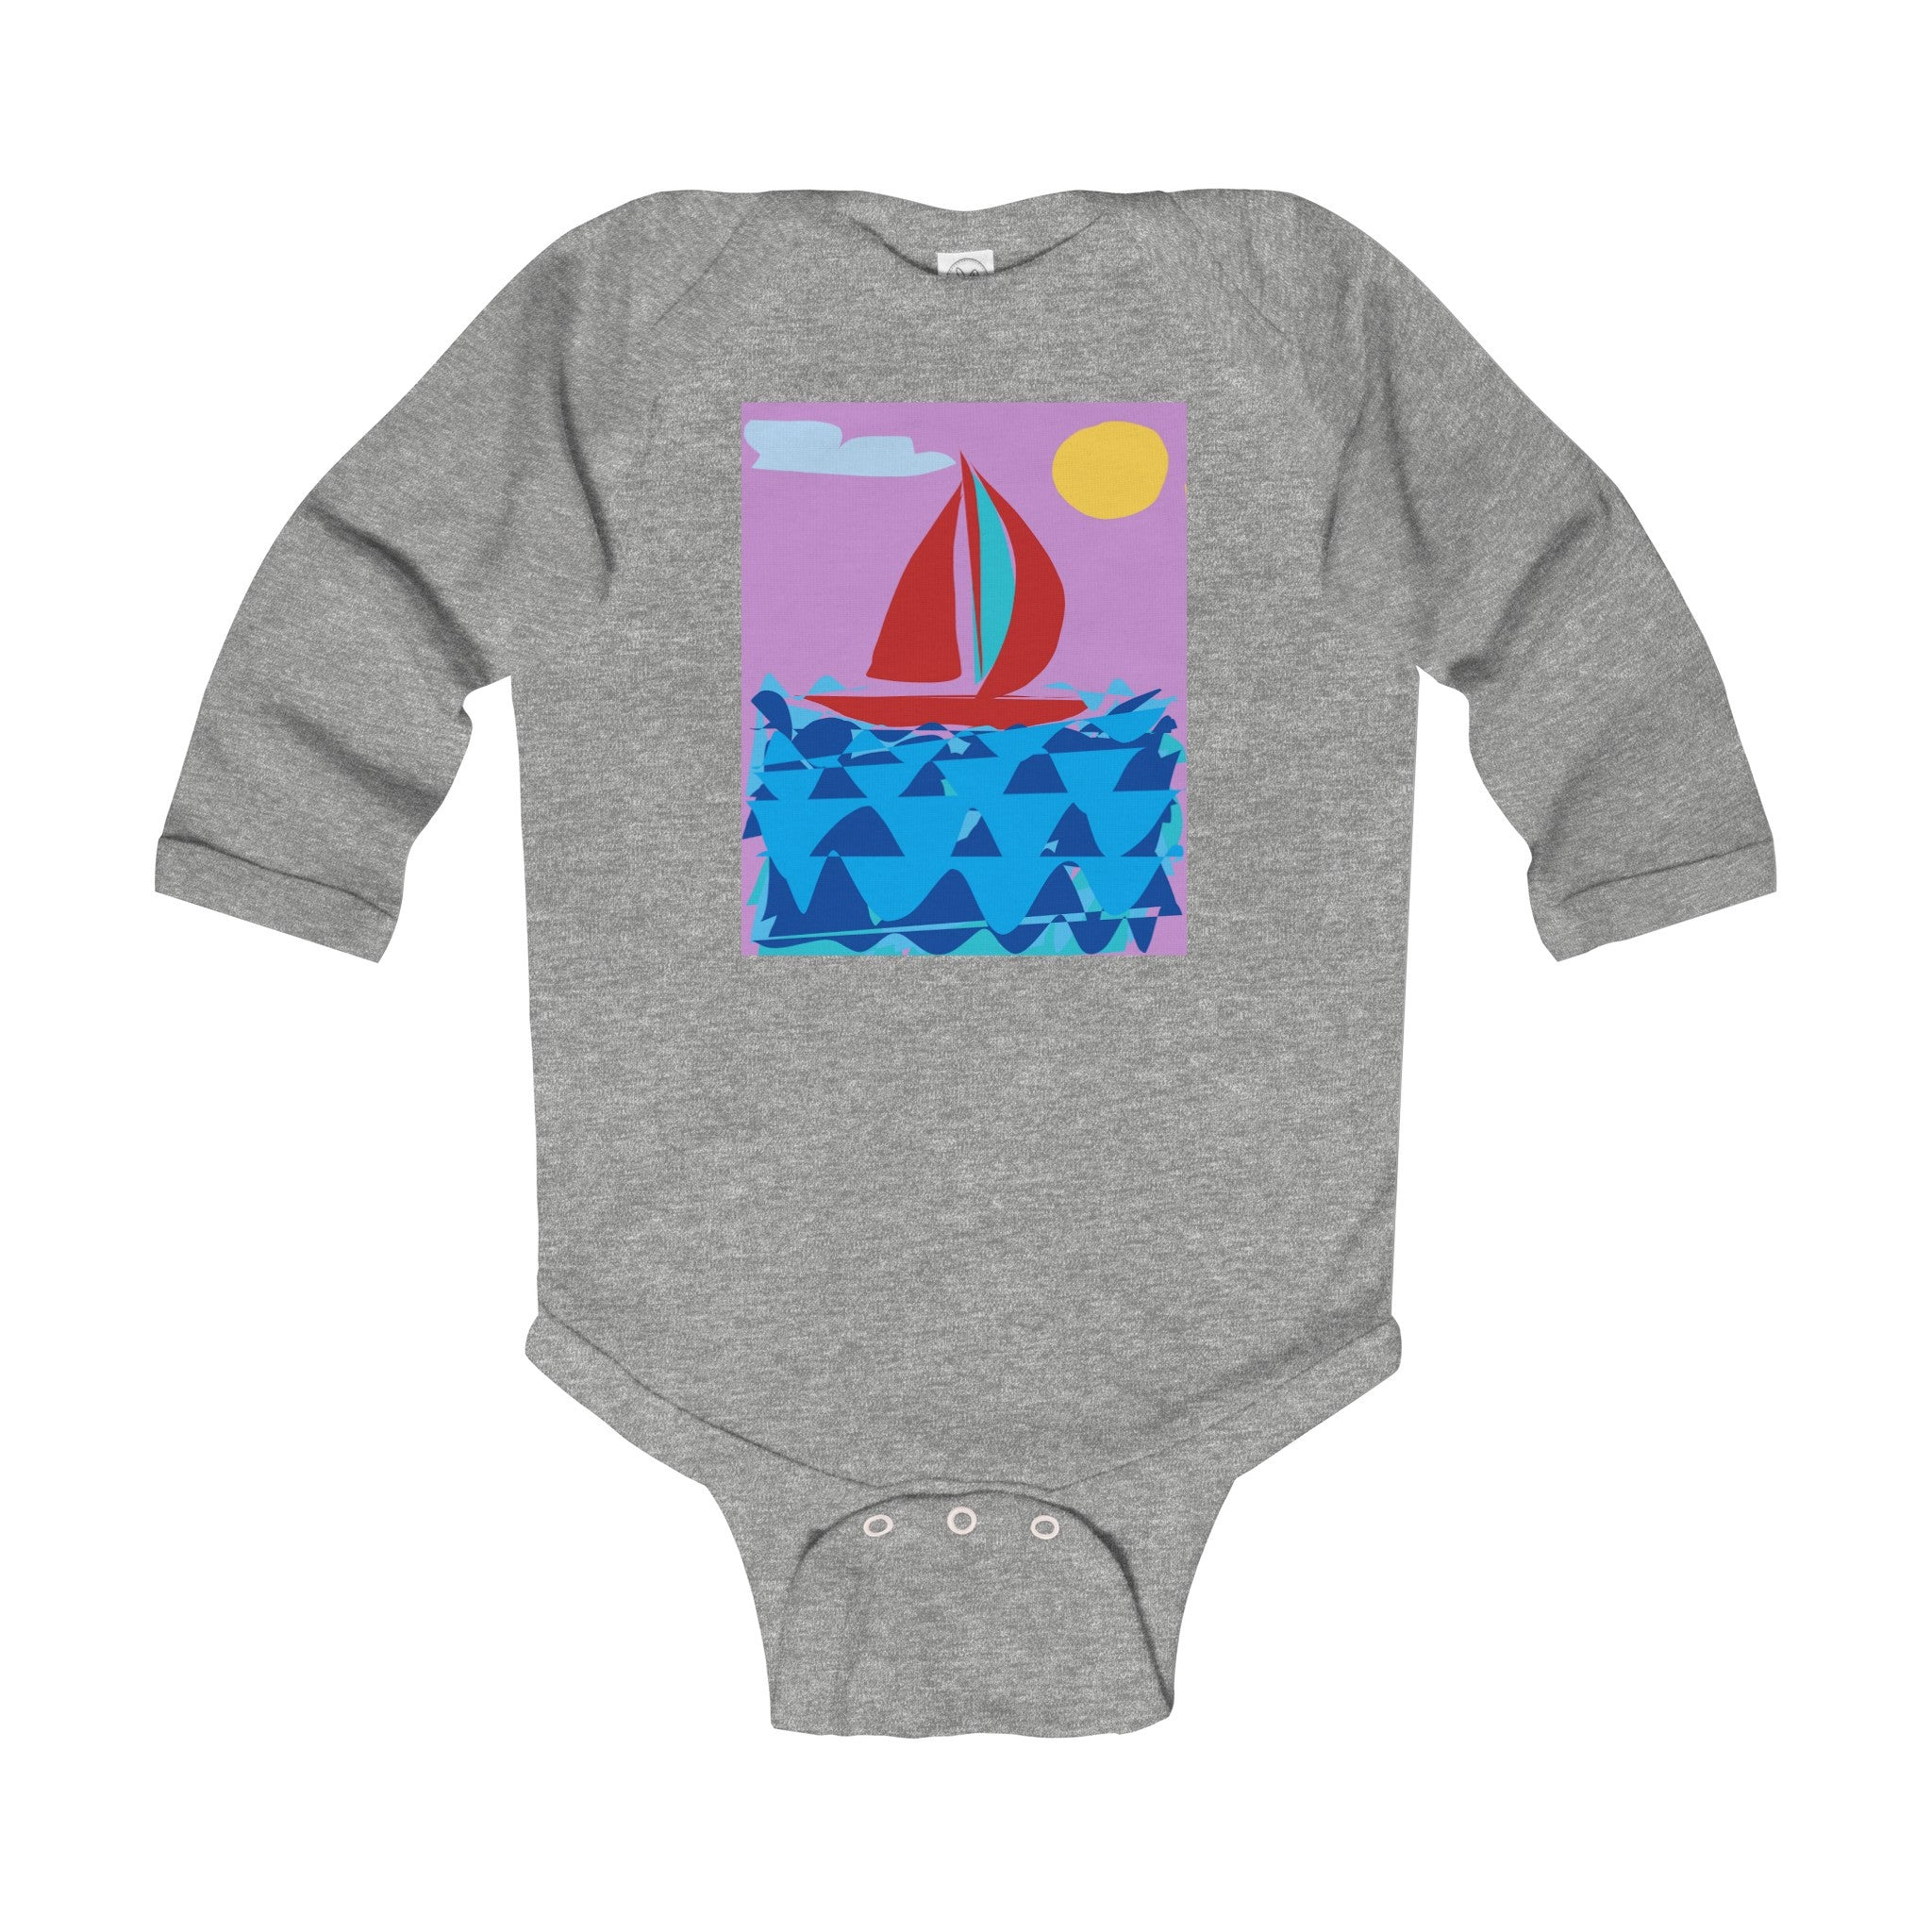 Infant Long Sleeve Bodysuit-Kids clothes-Printify-6-12M-Heather-Love My Husband Shop